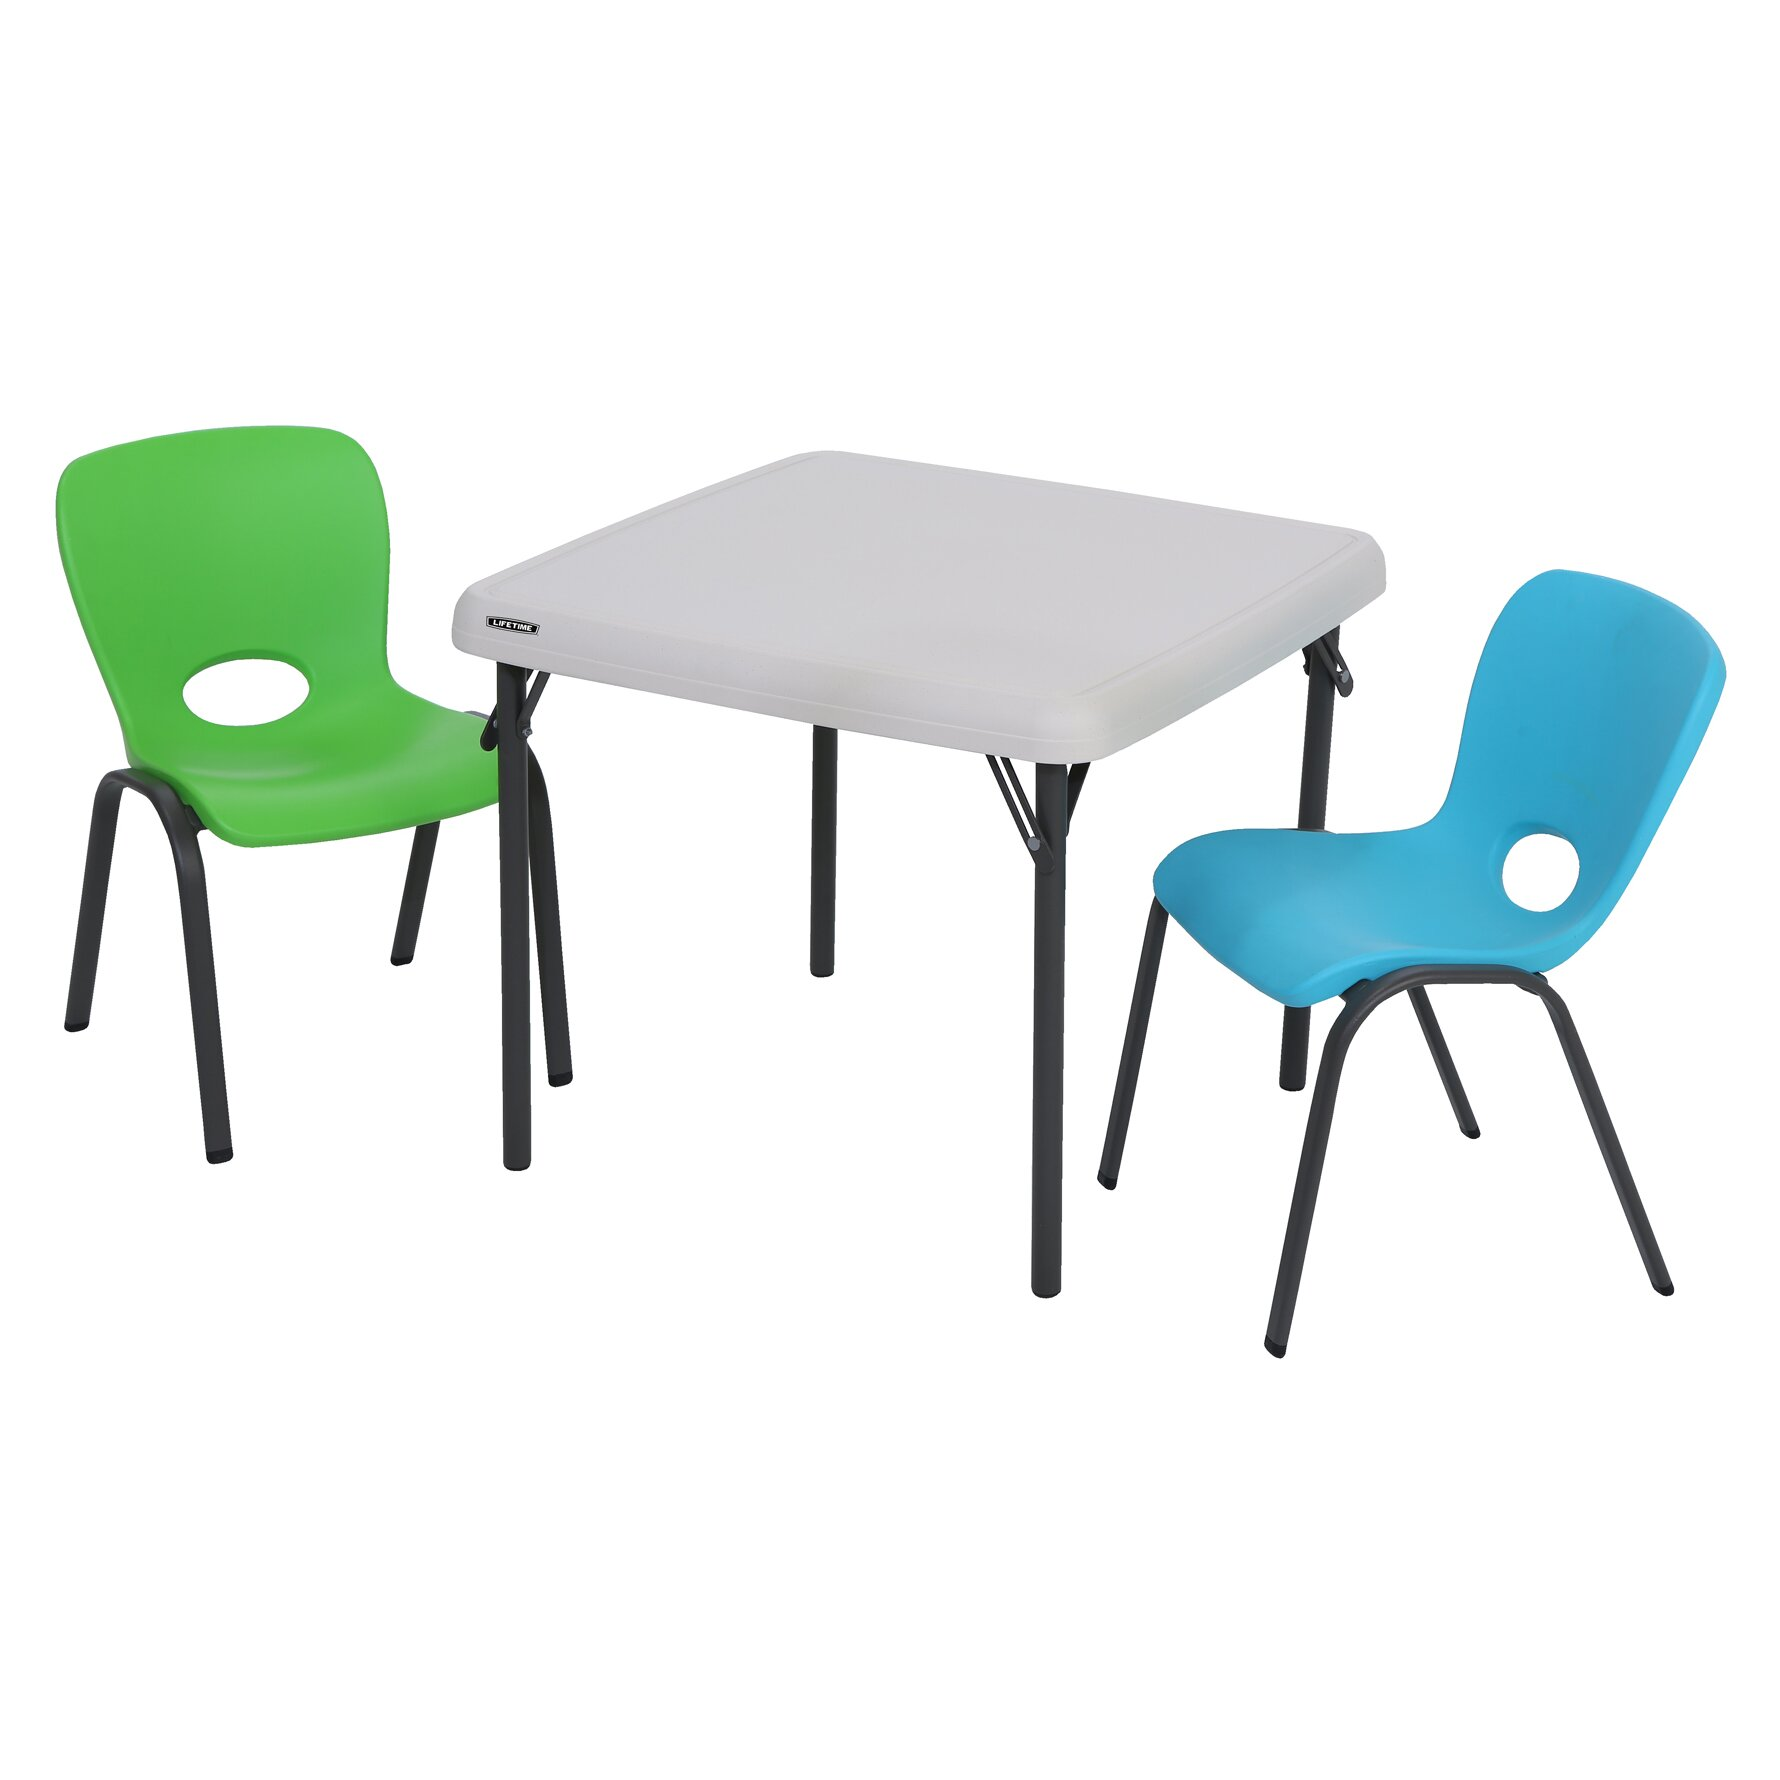 Lifetime Square Folding Table picture on 24 Square Folding Table 80425 LXT1325 with Lifetime Square Folding Table, Folding Table 61434336175af359217b55c4119f600e